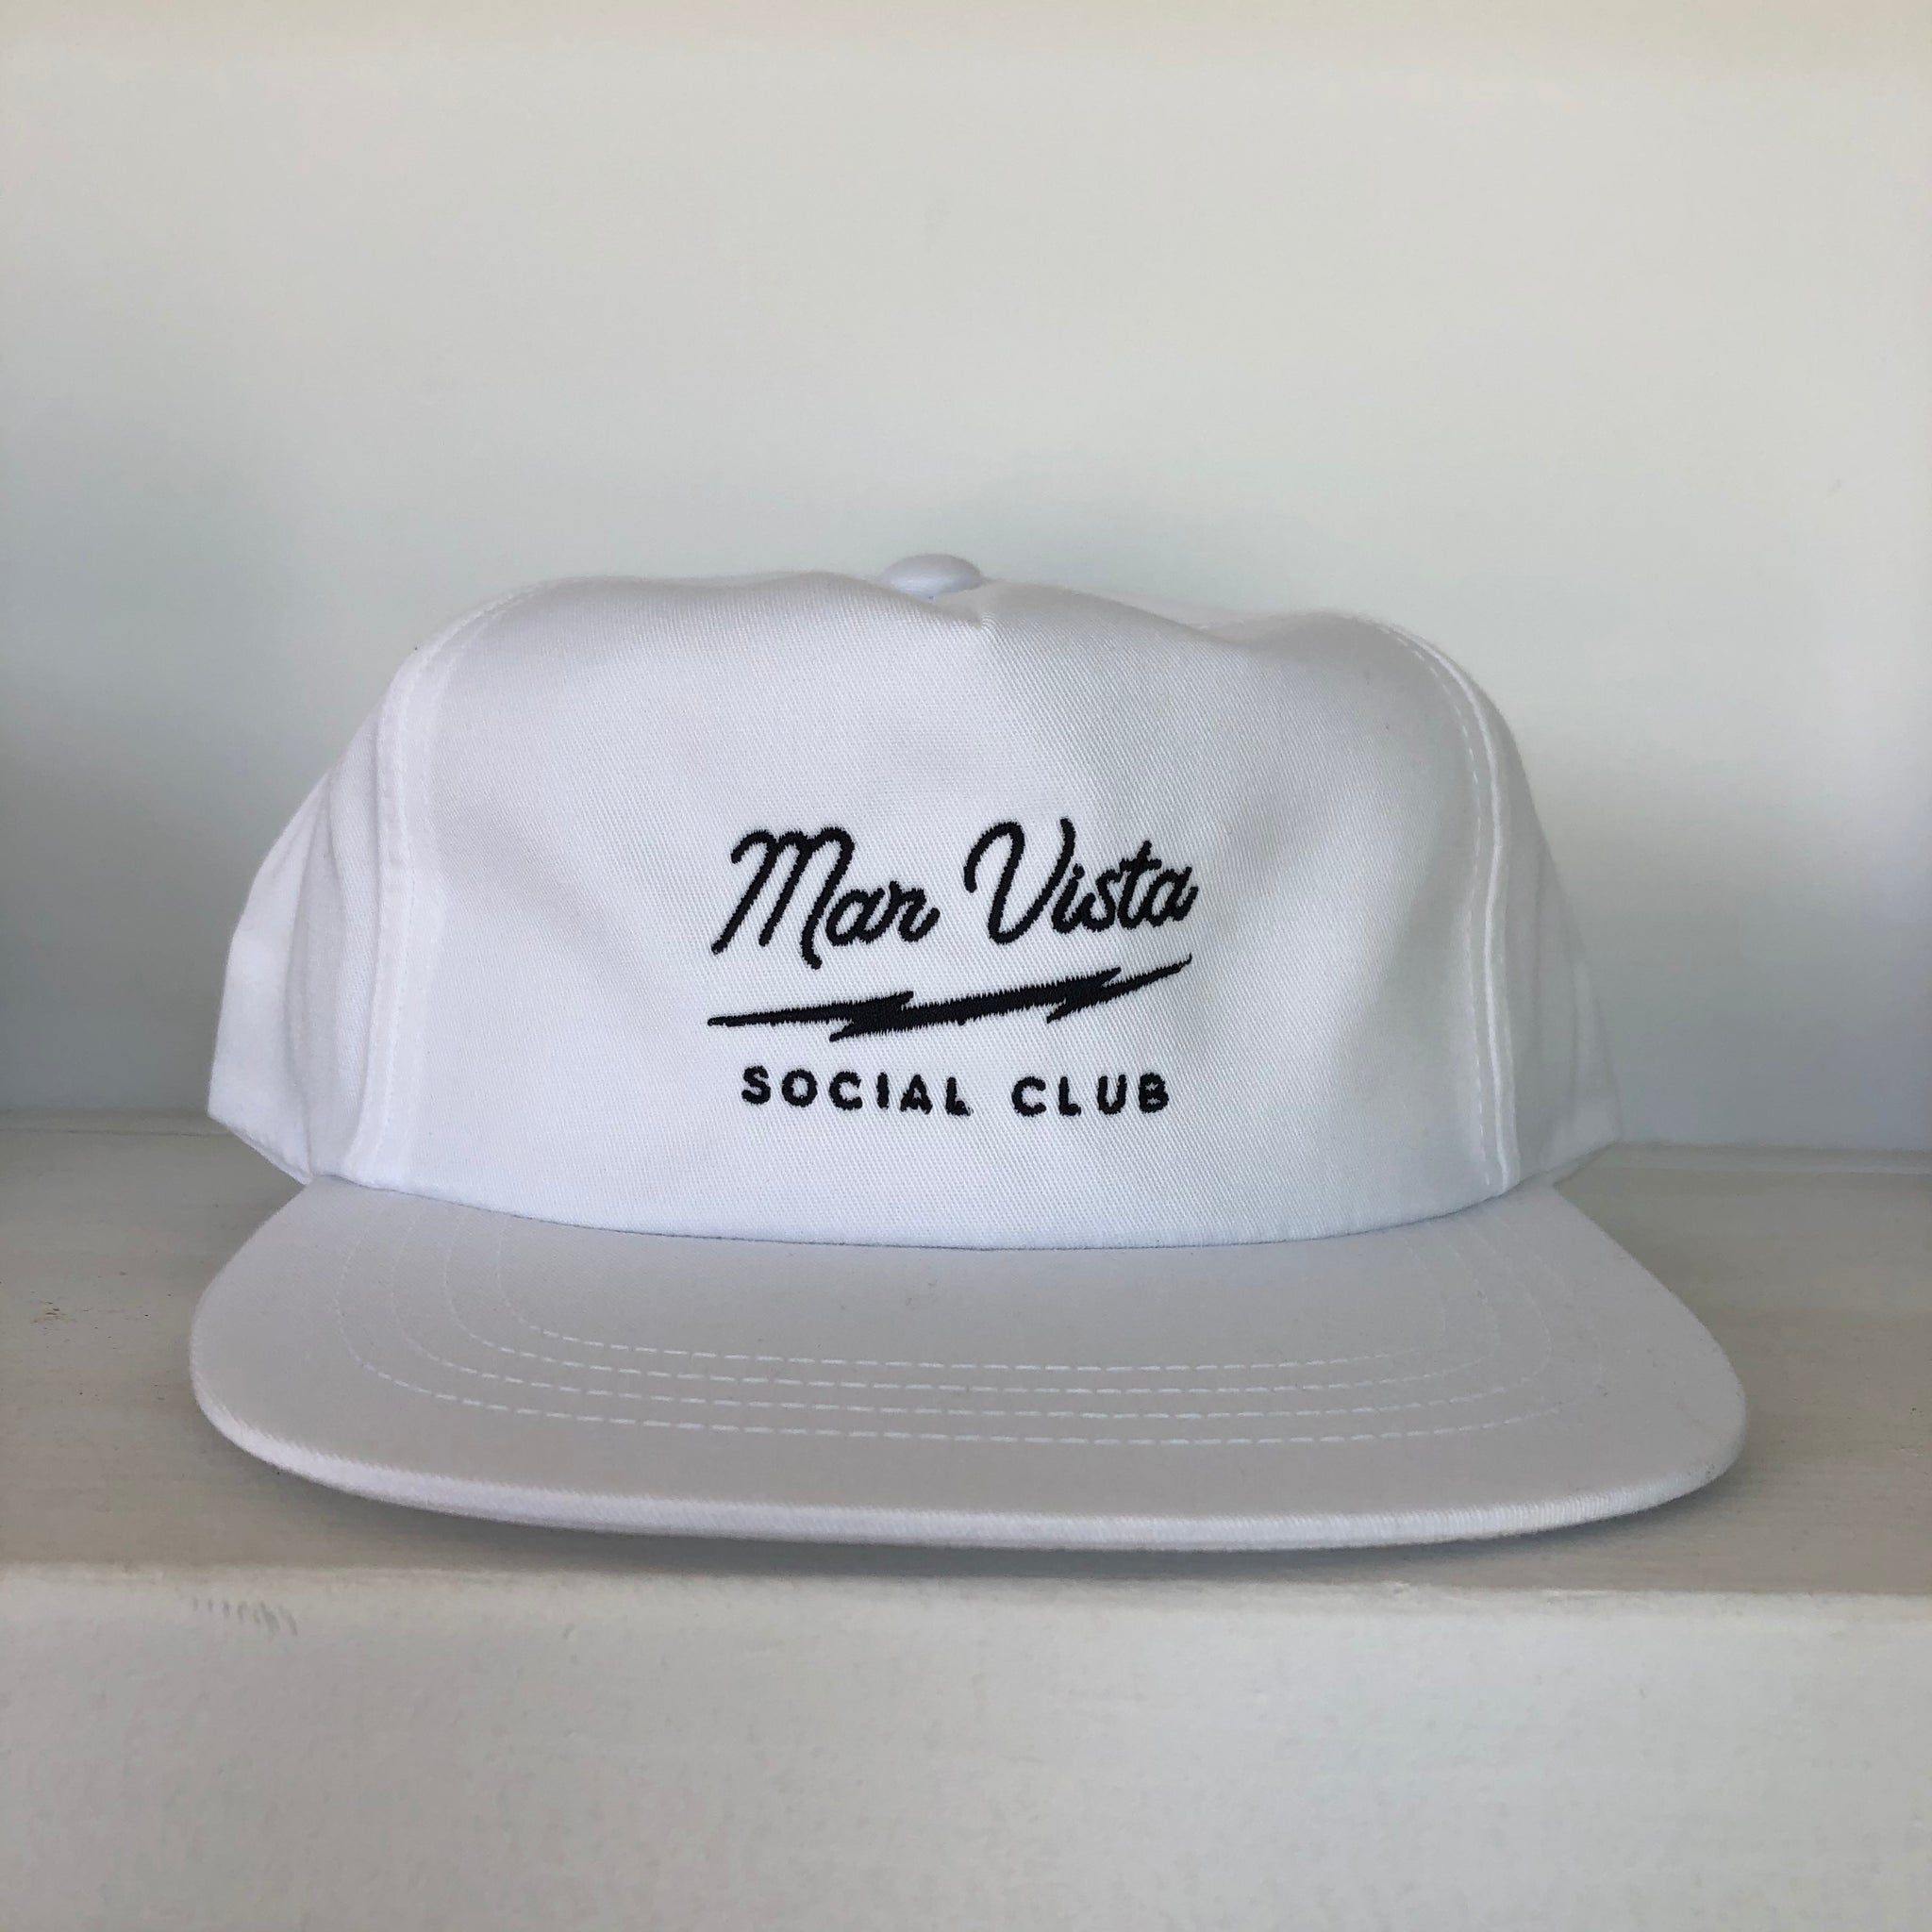 Mar Vista Social Club Hat